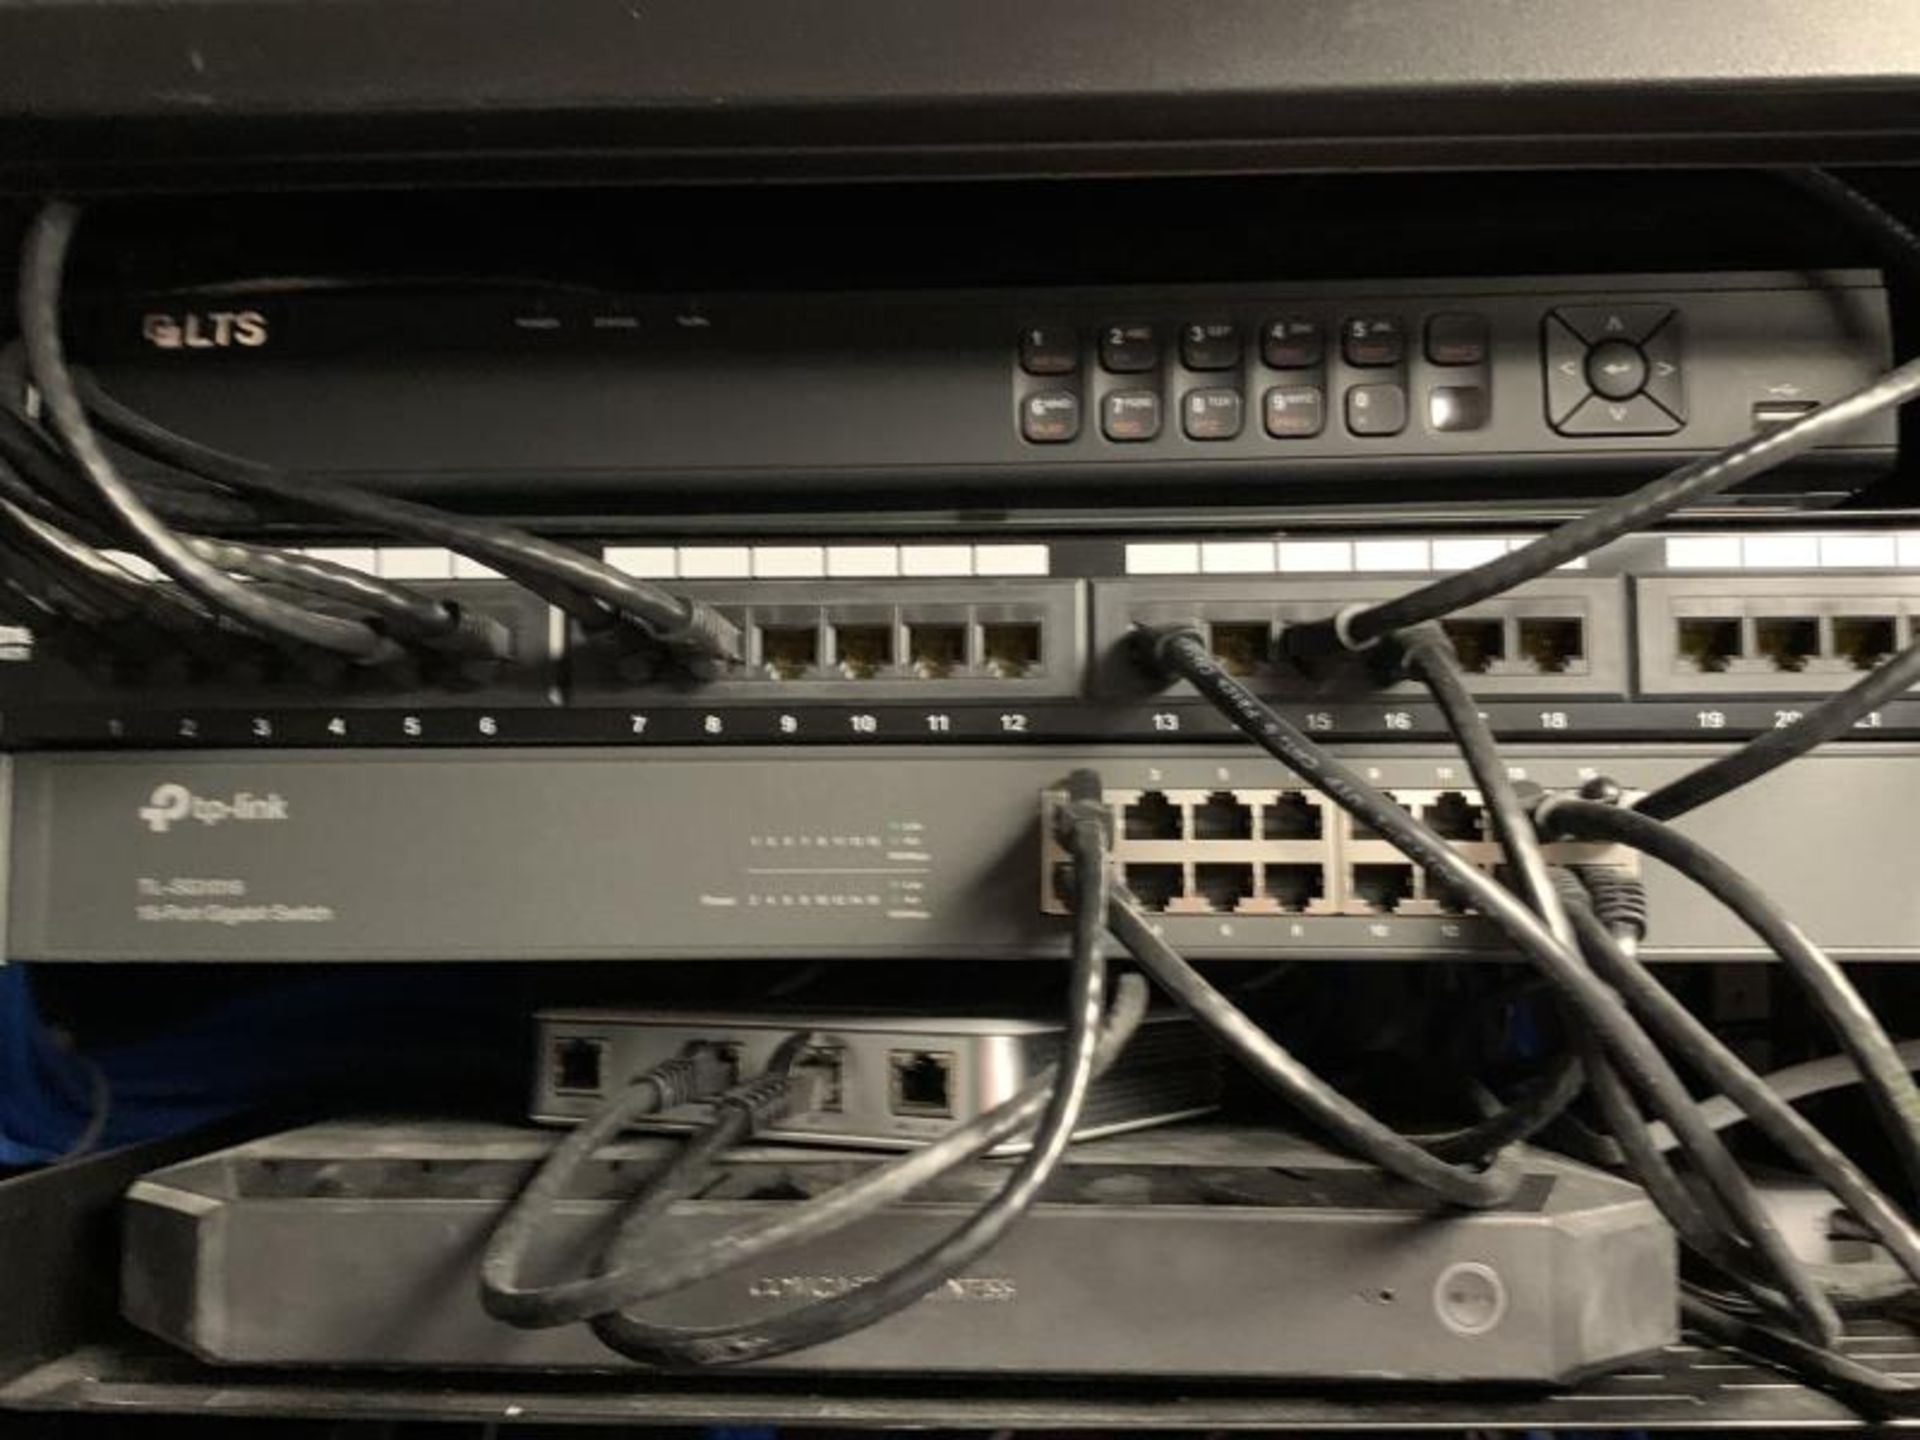 IT Cabinet, Wall Mounted w/ Cyberpower OR500, Tripp-Lite, UBL CSA 1120Z, TP-Link TL-SG1016 16 Port - Image 3 of 3